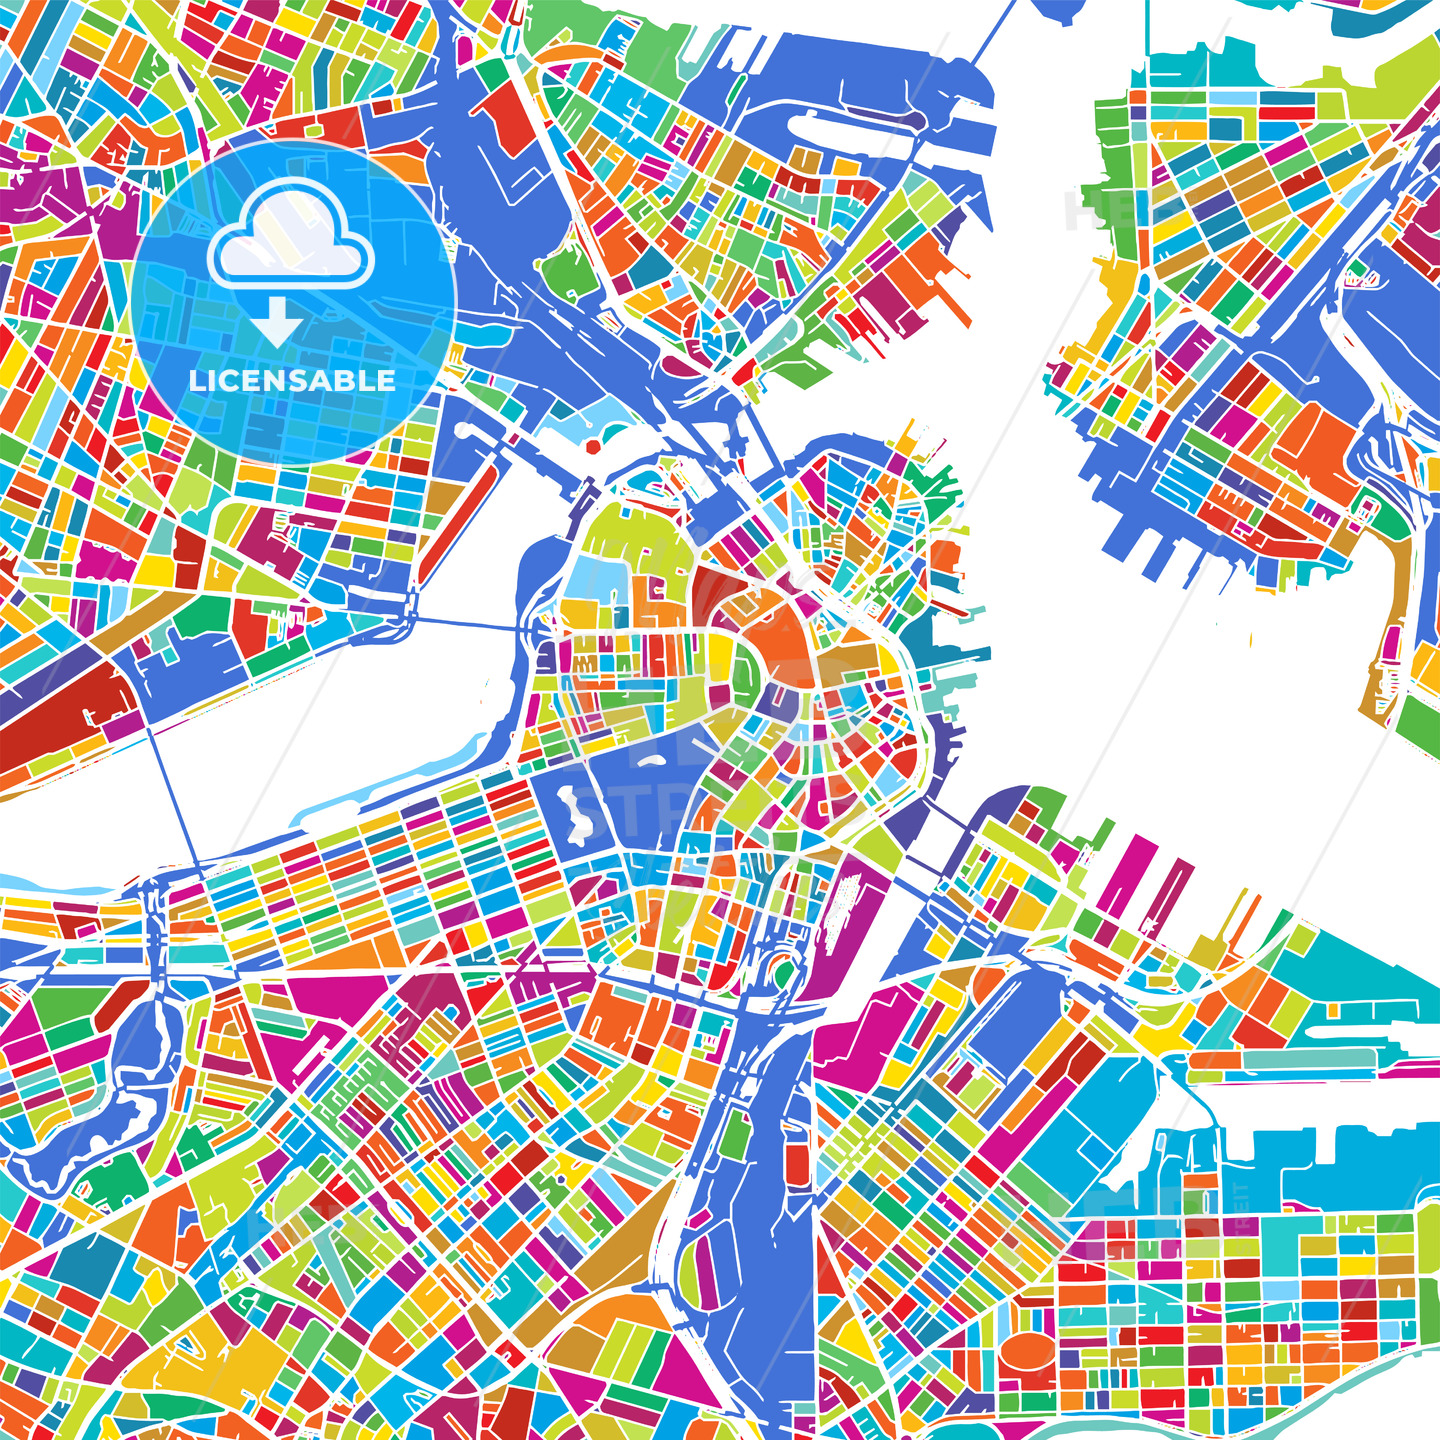 Boston Colorful Vector Map - HEBSTREIT's Sketches